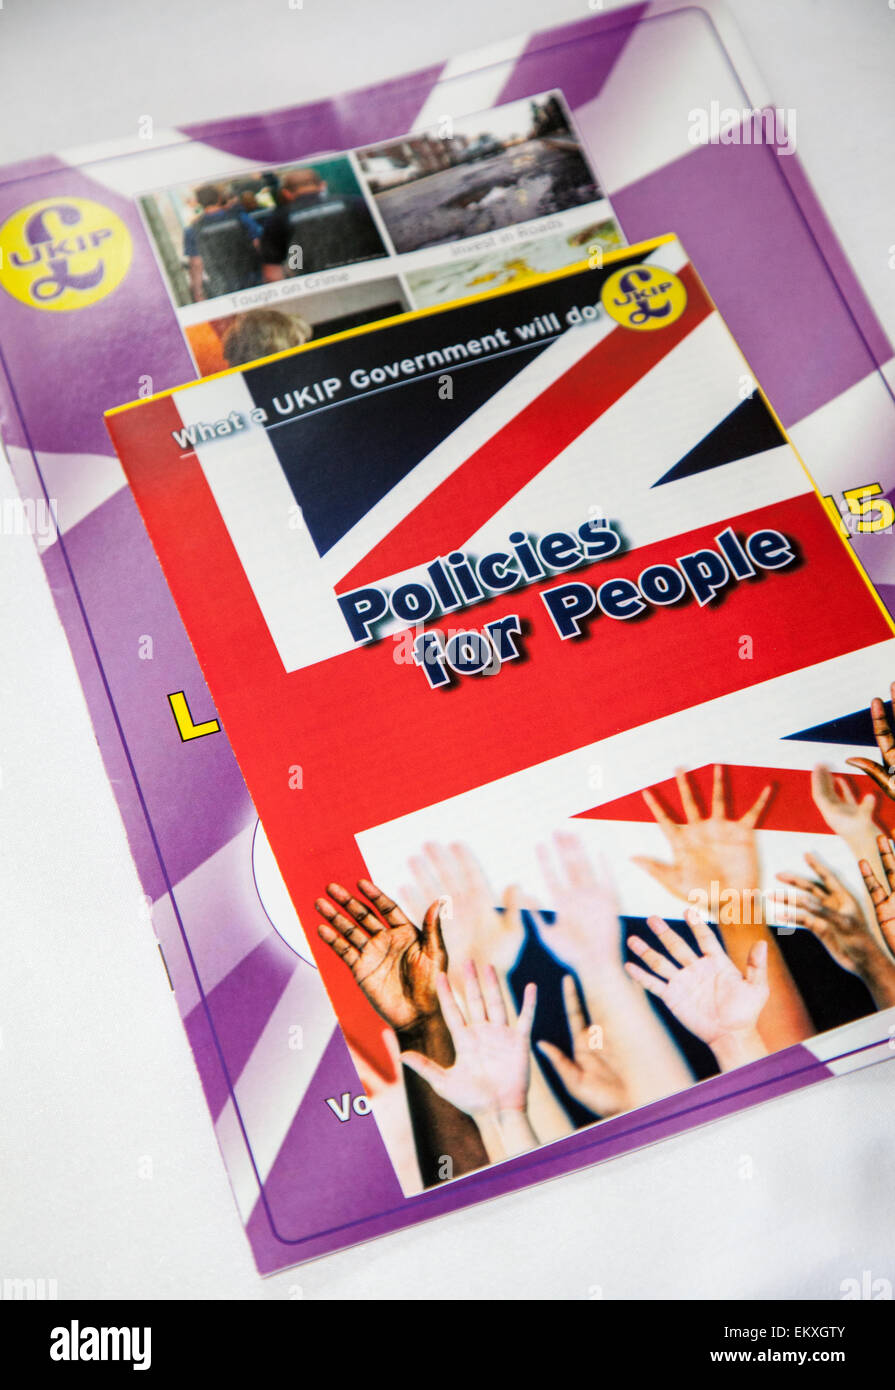 Southport, Merseyside, UK 14th April, 2015. UKIP 'Policies for People' pamphlet as Southport prepares for - Stock Image